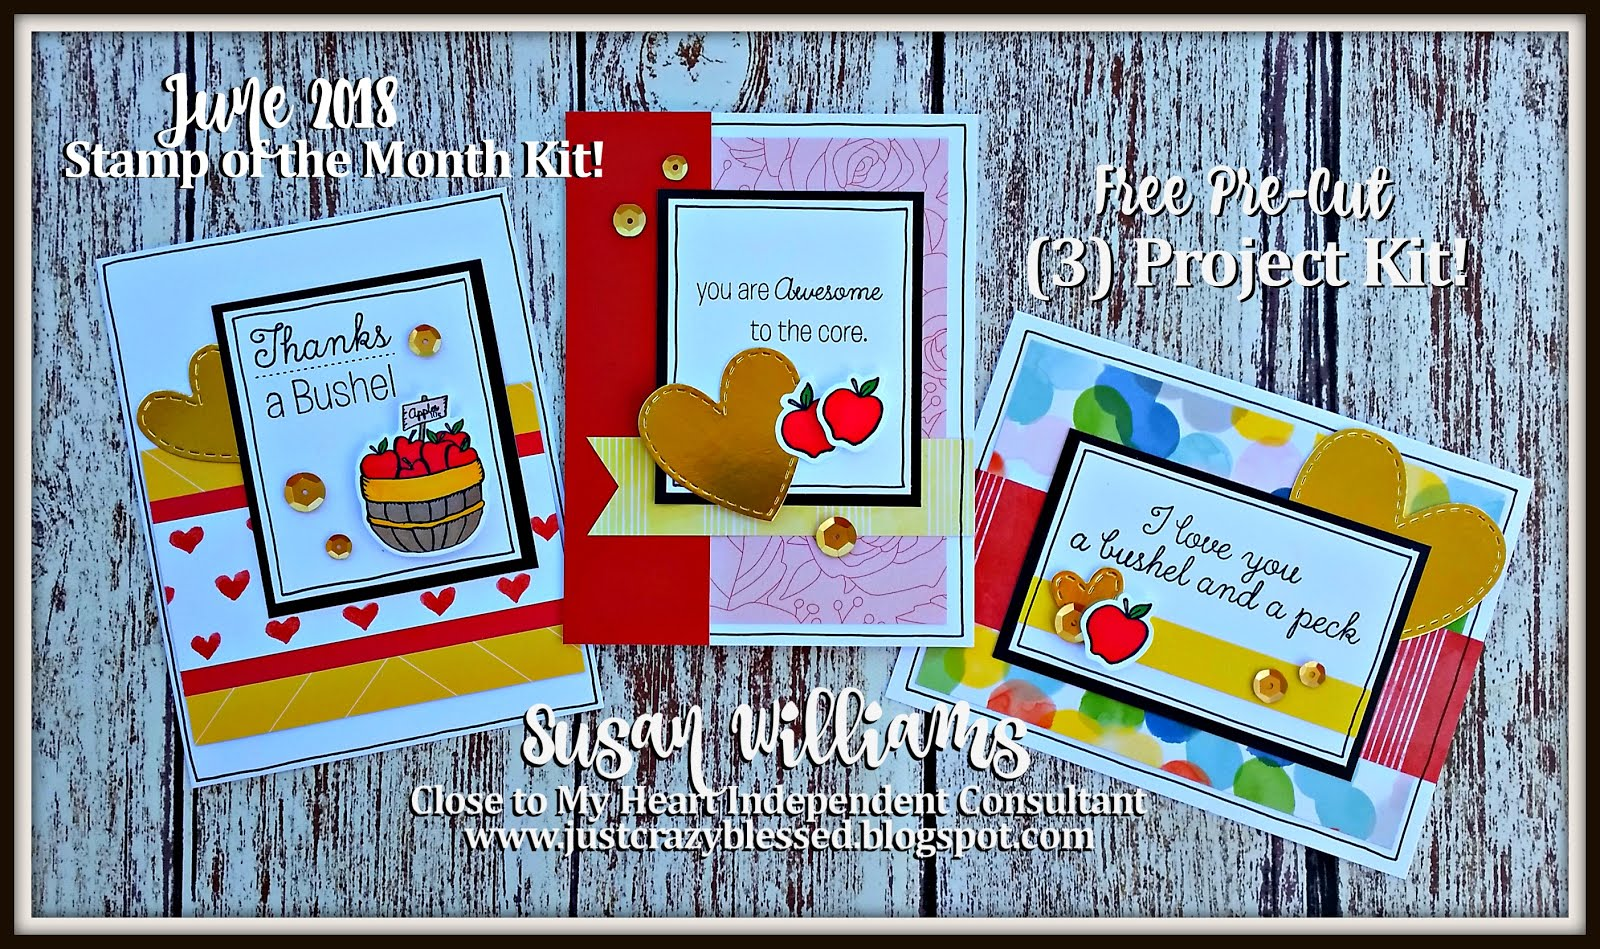 June 2018 Stamp of the Month Kit!